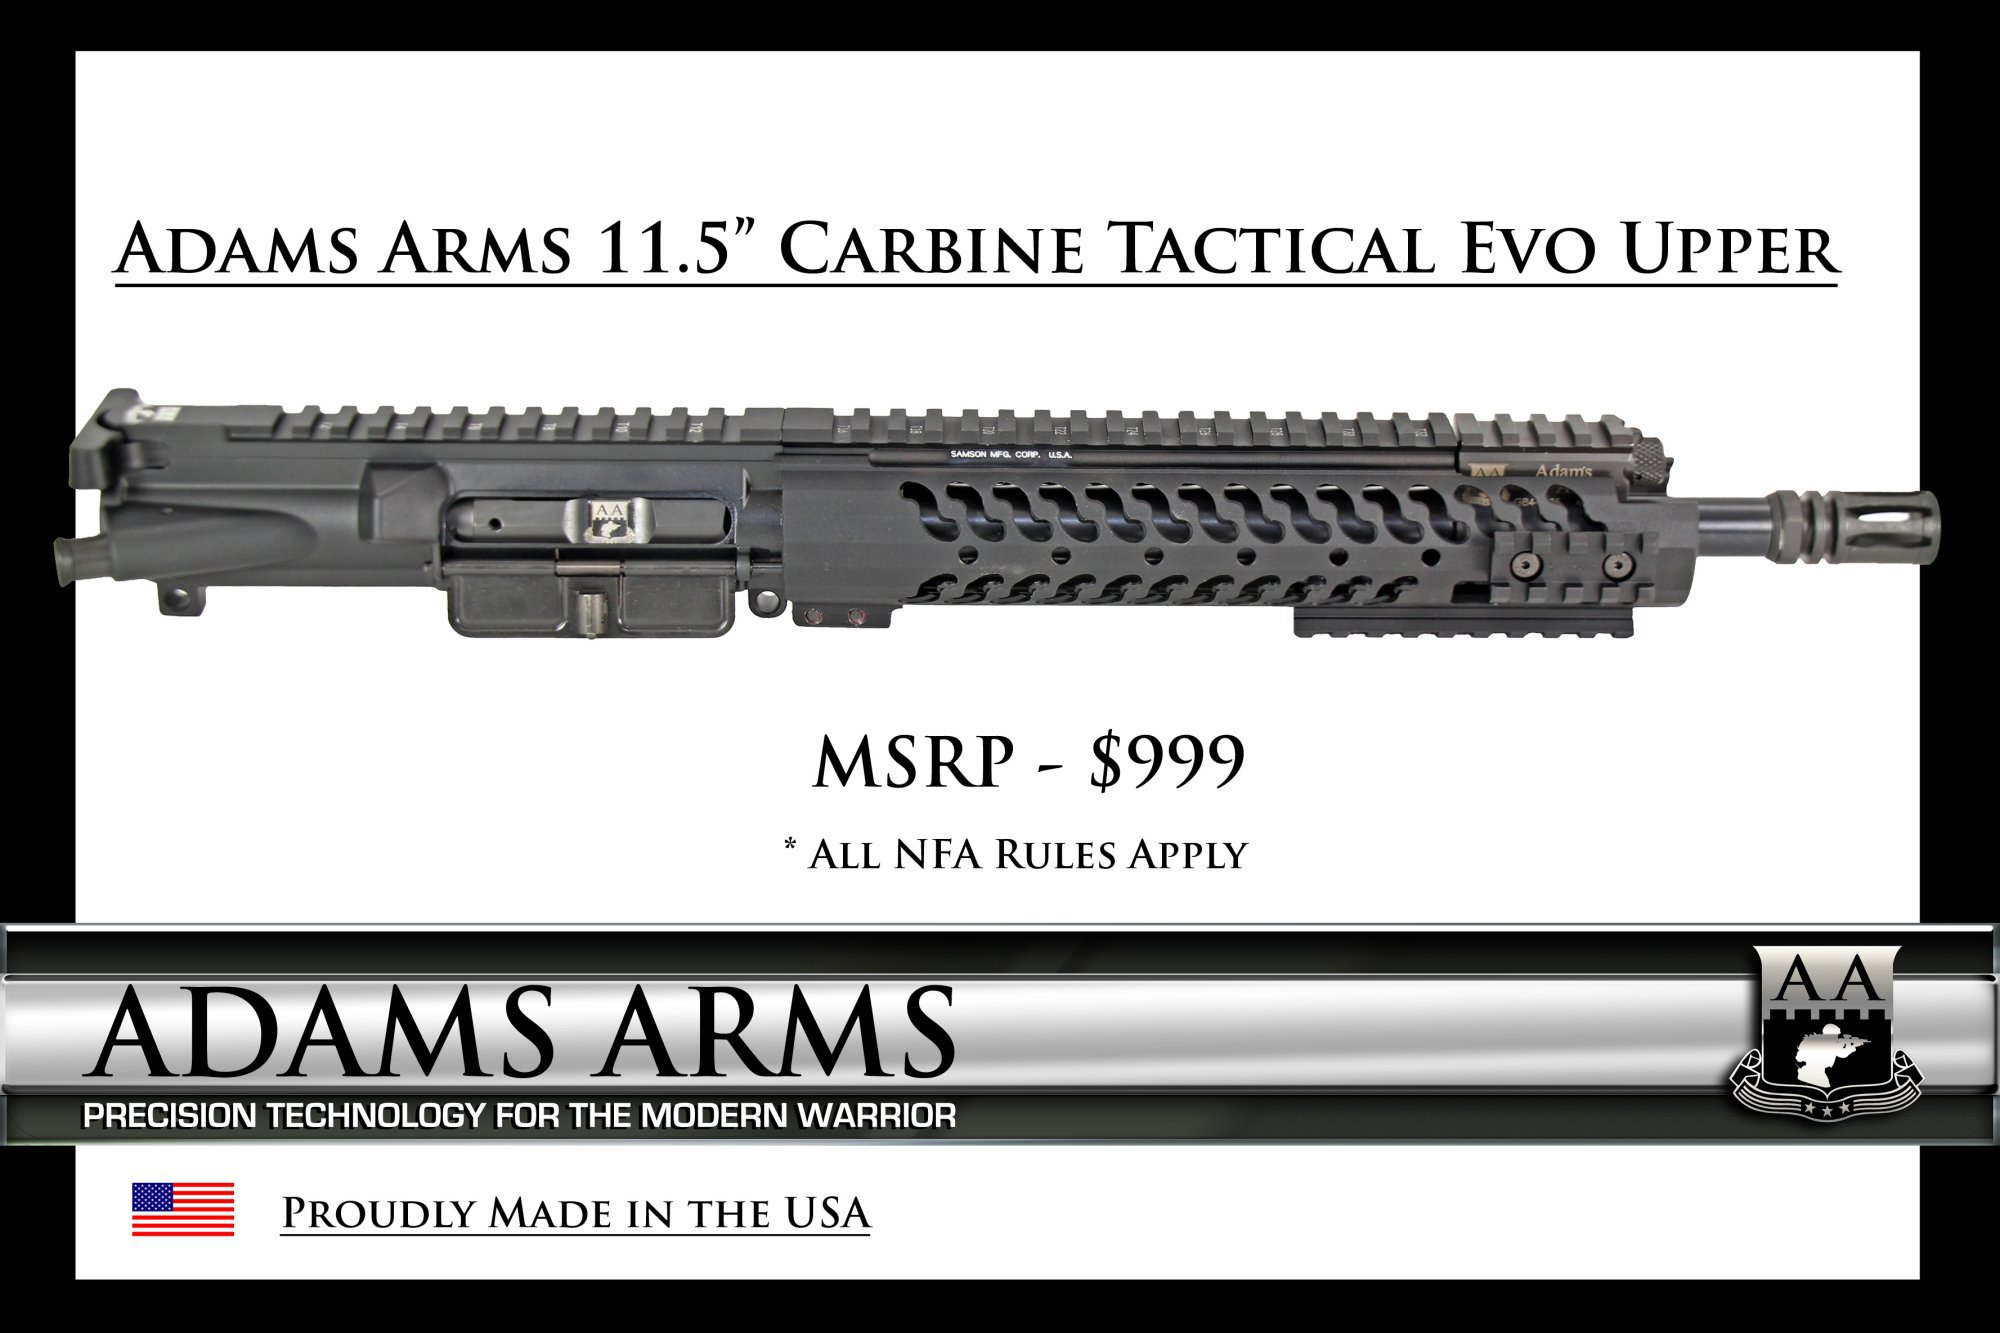 Adams Arms AA 11.5 inch Carbine Tactical Evo Piston AR Upper Receiver Tactical AR SBR Upper 1 Adams Arms (AA) Tactical Evo Piston AR (AR 15/M16 Rifle / M4/M4A1 Carbine) Uppers (Upper Receivers) with Samson Evolution Rail System/Tactical Handguards for Martial Combat and Tactical Training (Videos!)